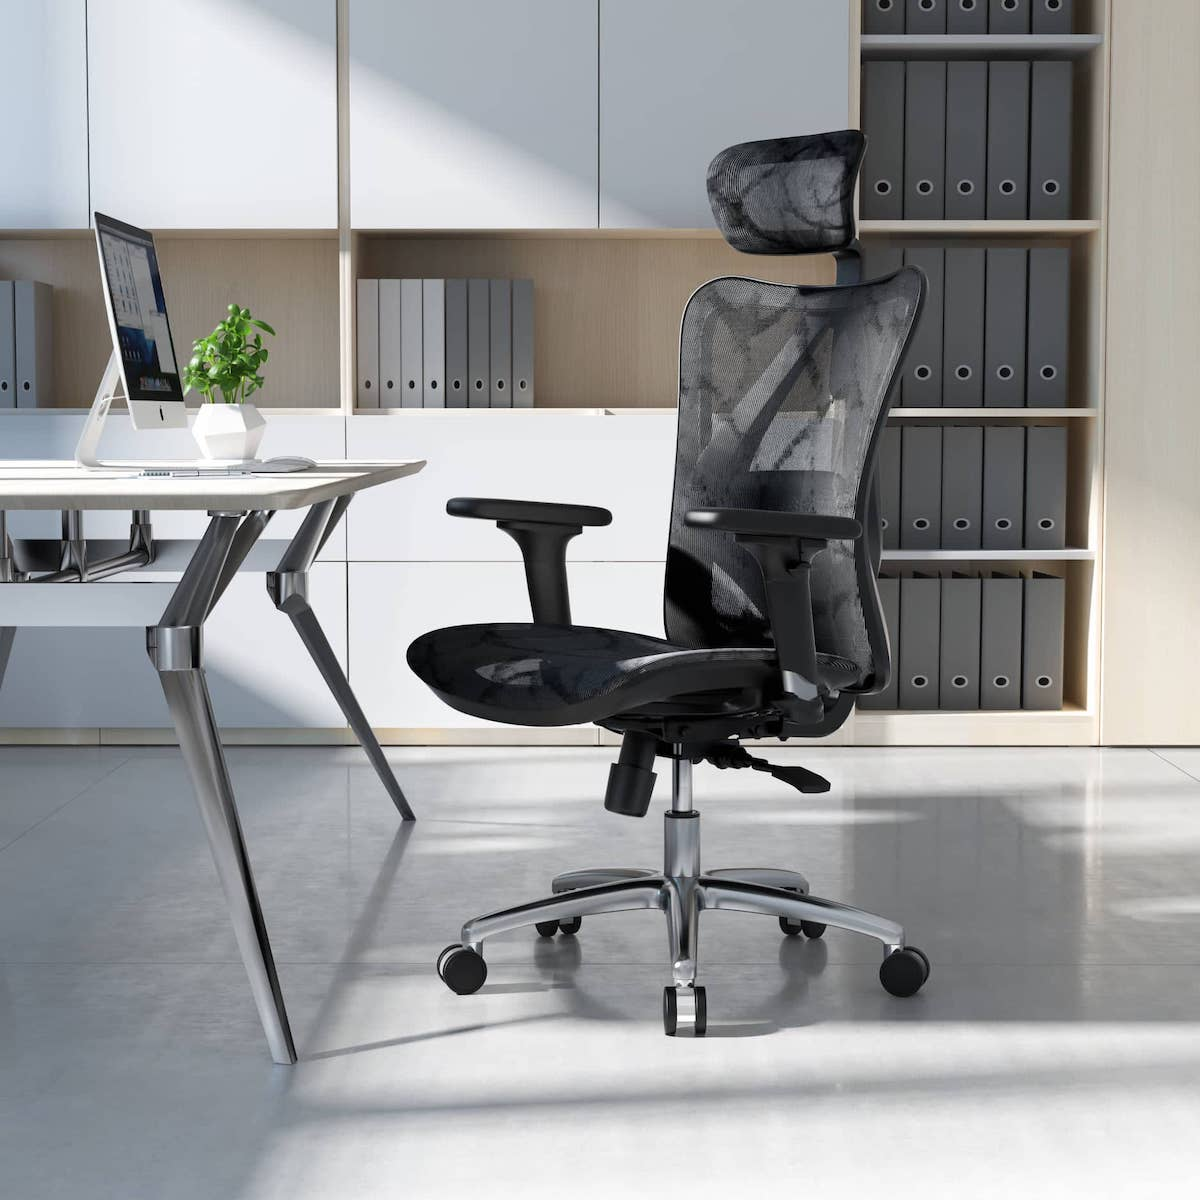 computer chair for long hours of sitting